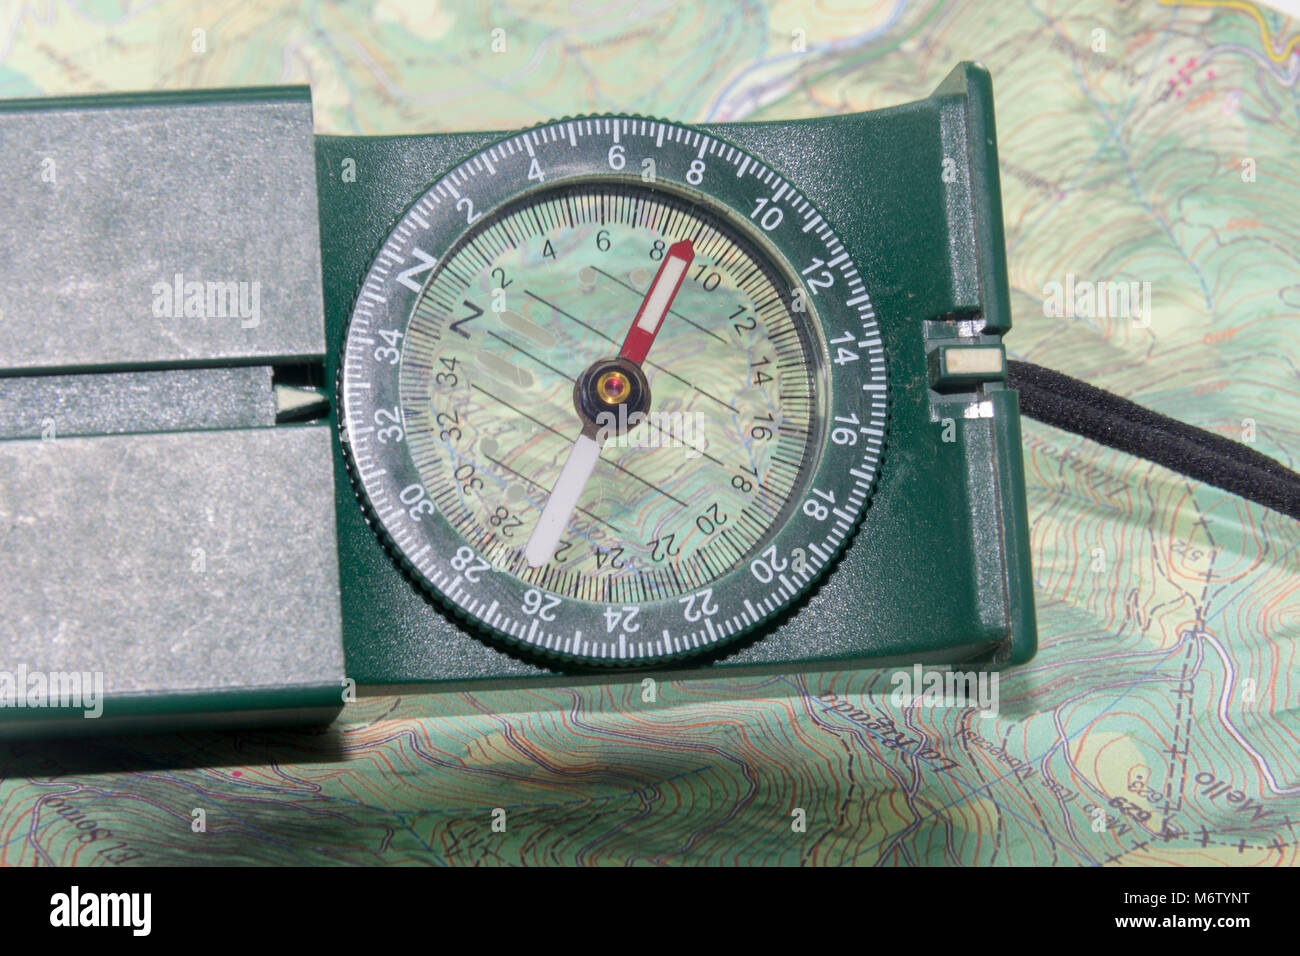 compass in a map - Stock Image